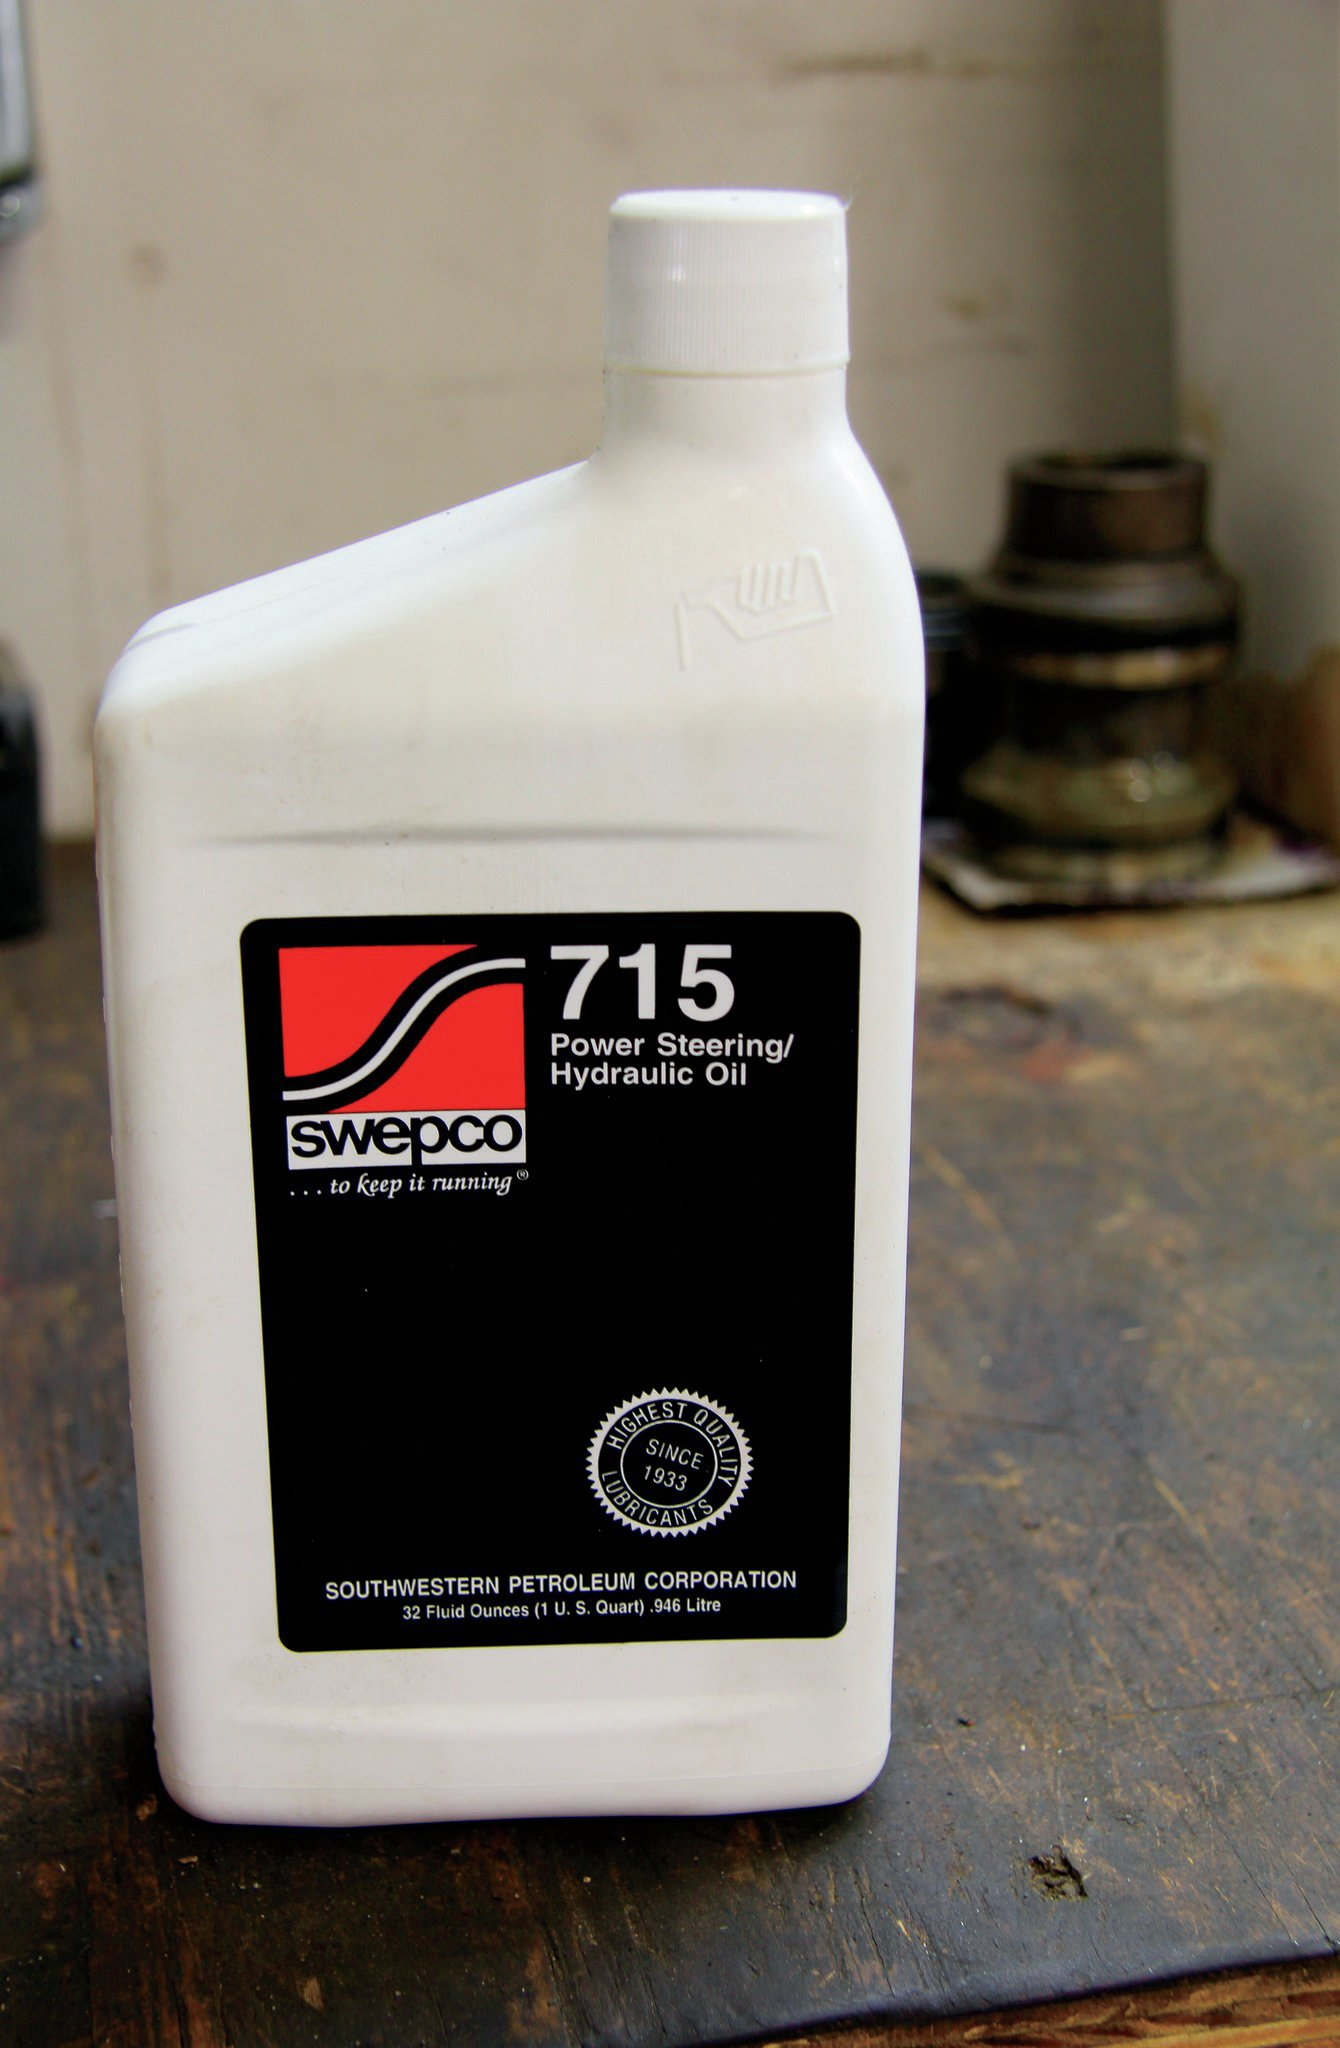 PSC sends detailed bleeding instructions with its kit, which are easy to follow. Also included is Swepco 715 steering fluid. Swepco uses Lubium, which is a friction modifier designed to reduce steering pump noise. The 715 fluid is also engineered to operate at a wide range of fluid temperatures.